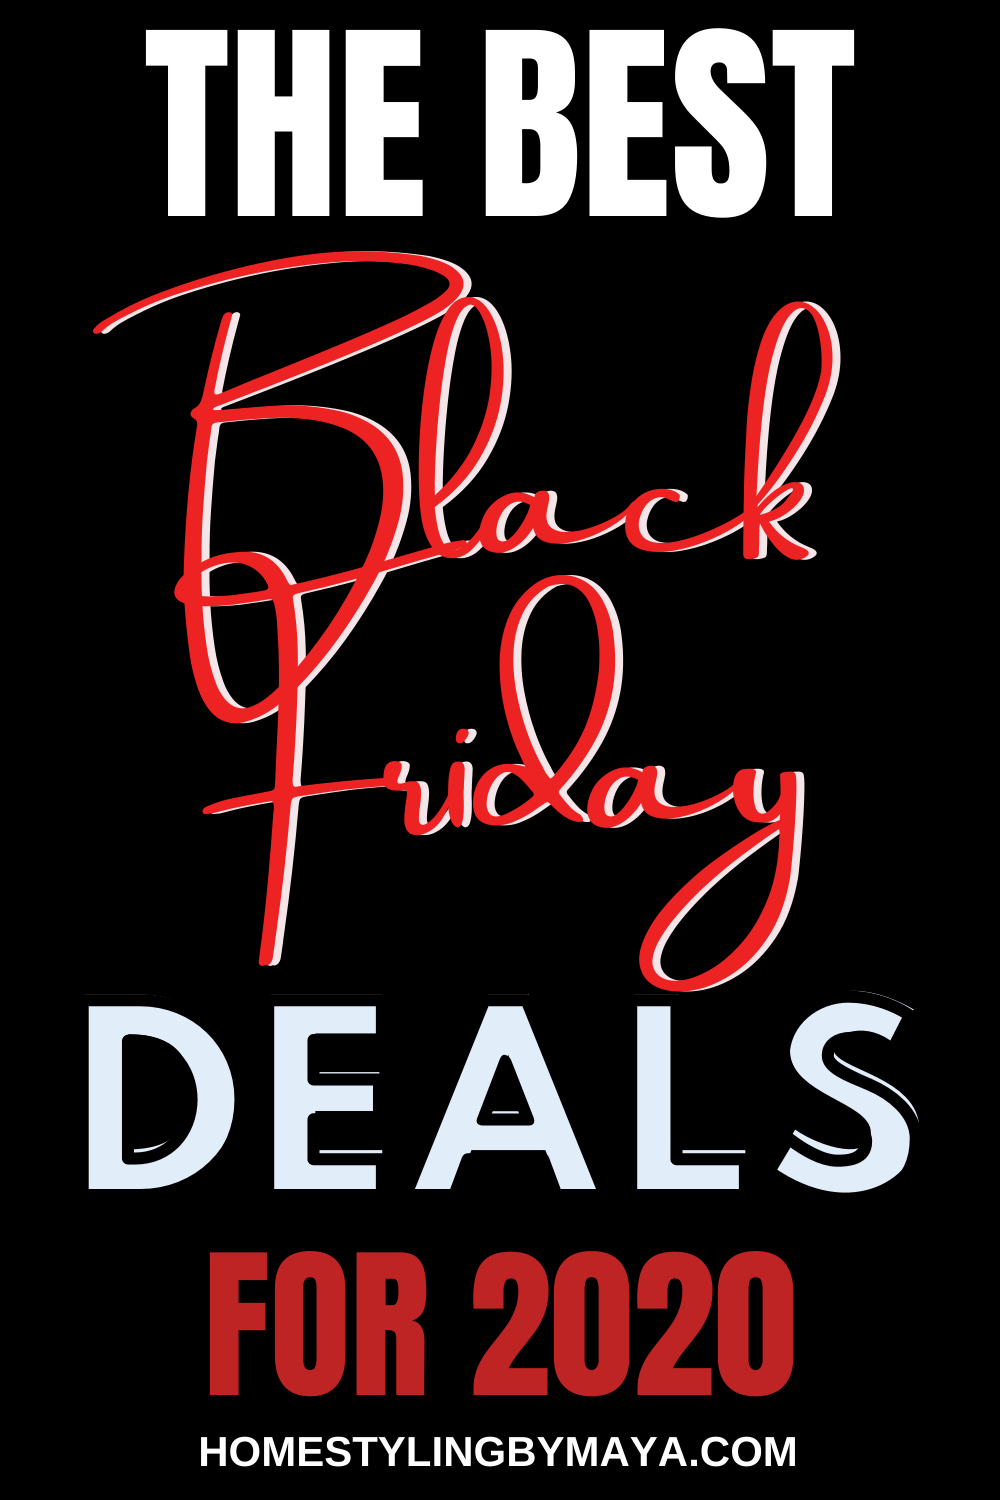 The Best 2020 Black Friday Deals: This blog post includes all of the best Black Friday deals and Black Friday shopping tips! Click through for the best Black Friday tips & deals! #blackfridaydeals #blackfridaytips #blackfridayshoppingtips #blackfriday2020